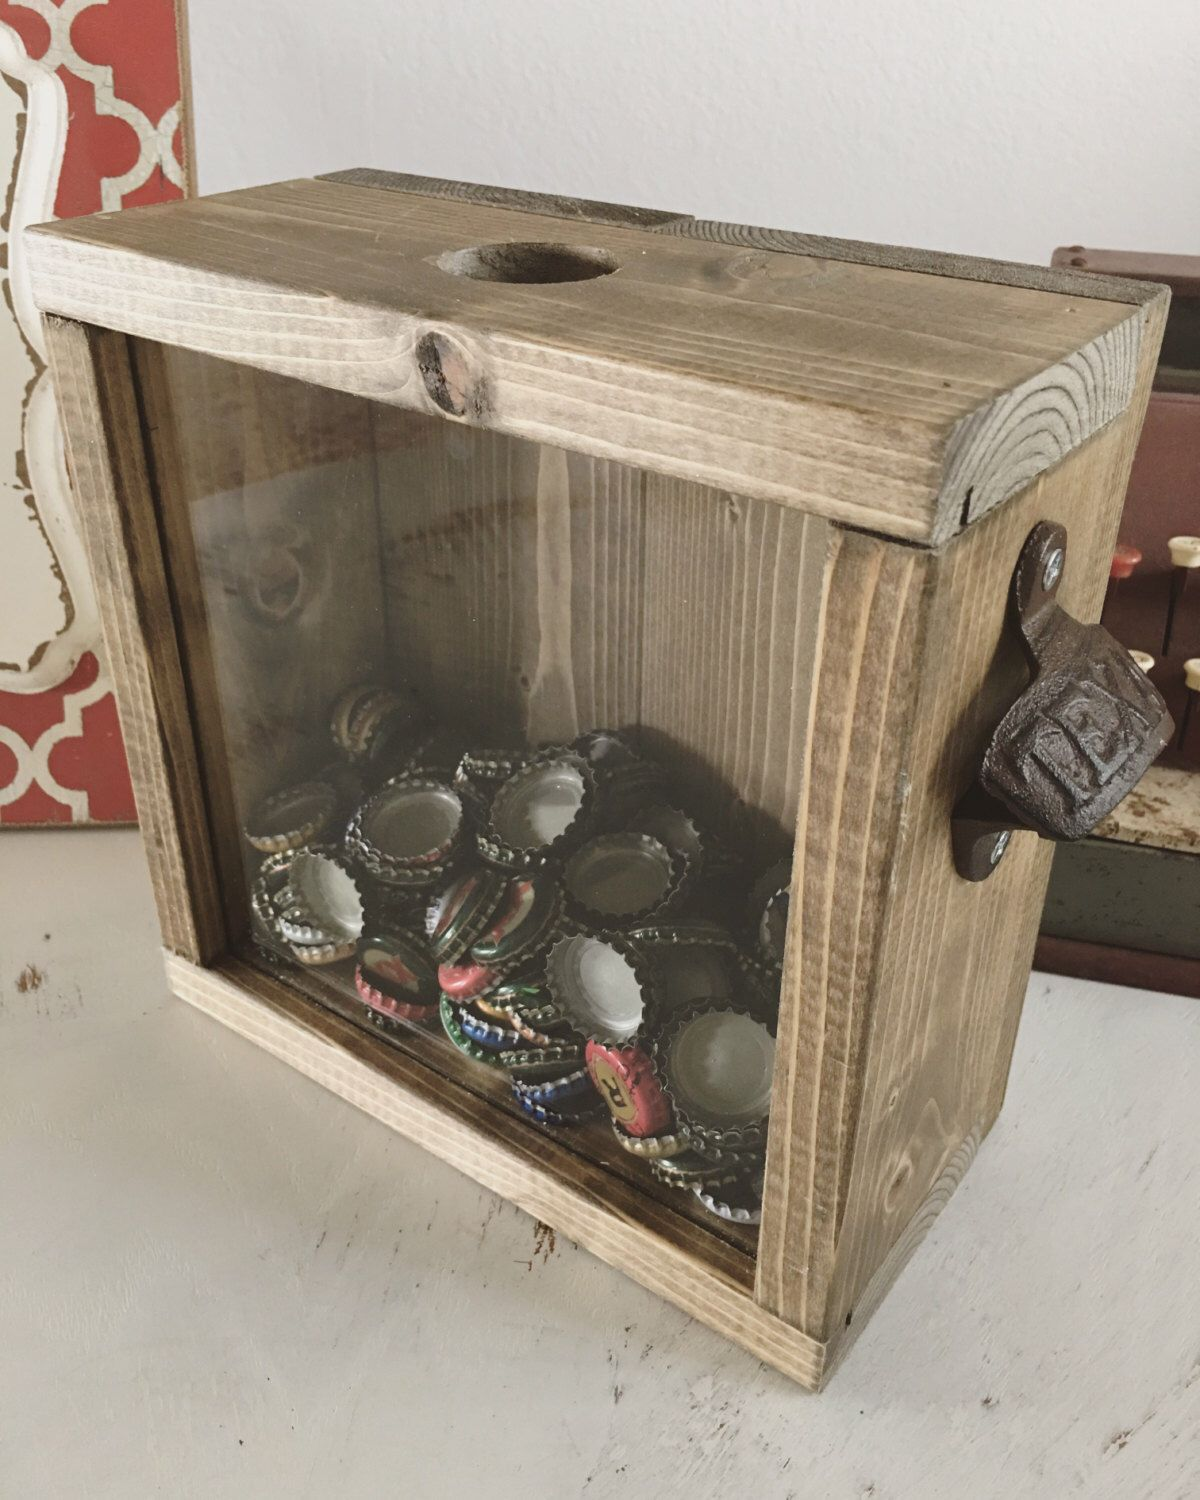 How To Build Shadow Box For Beer Can Collection